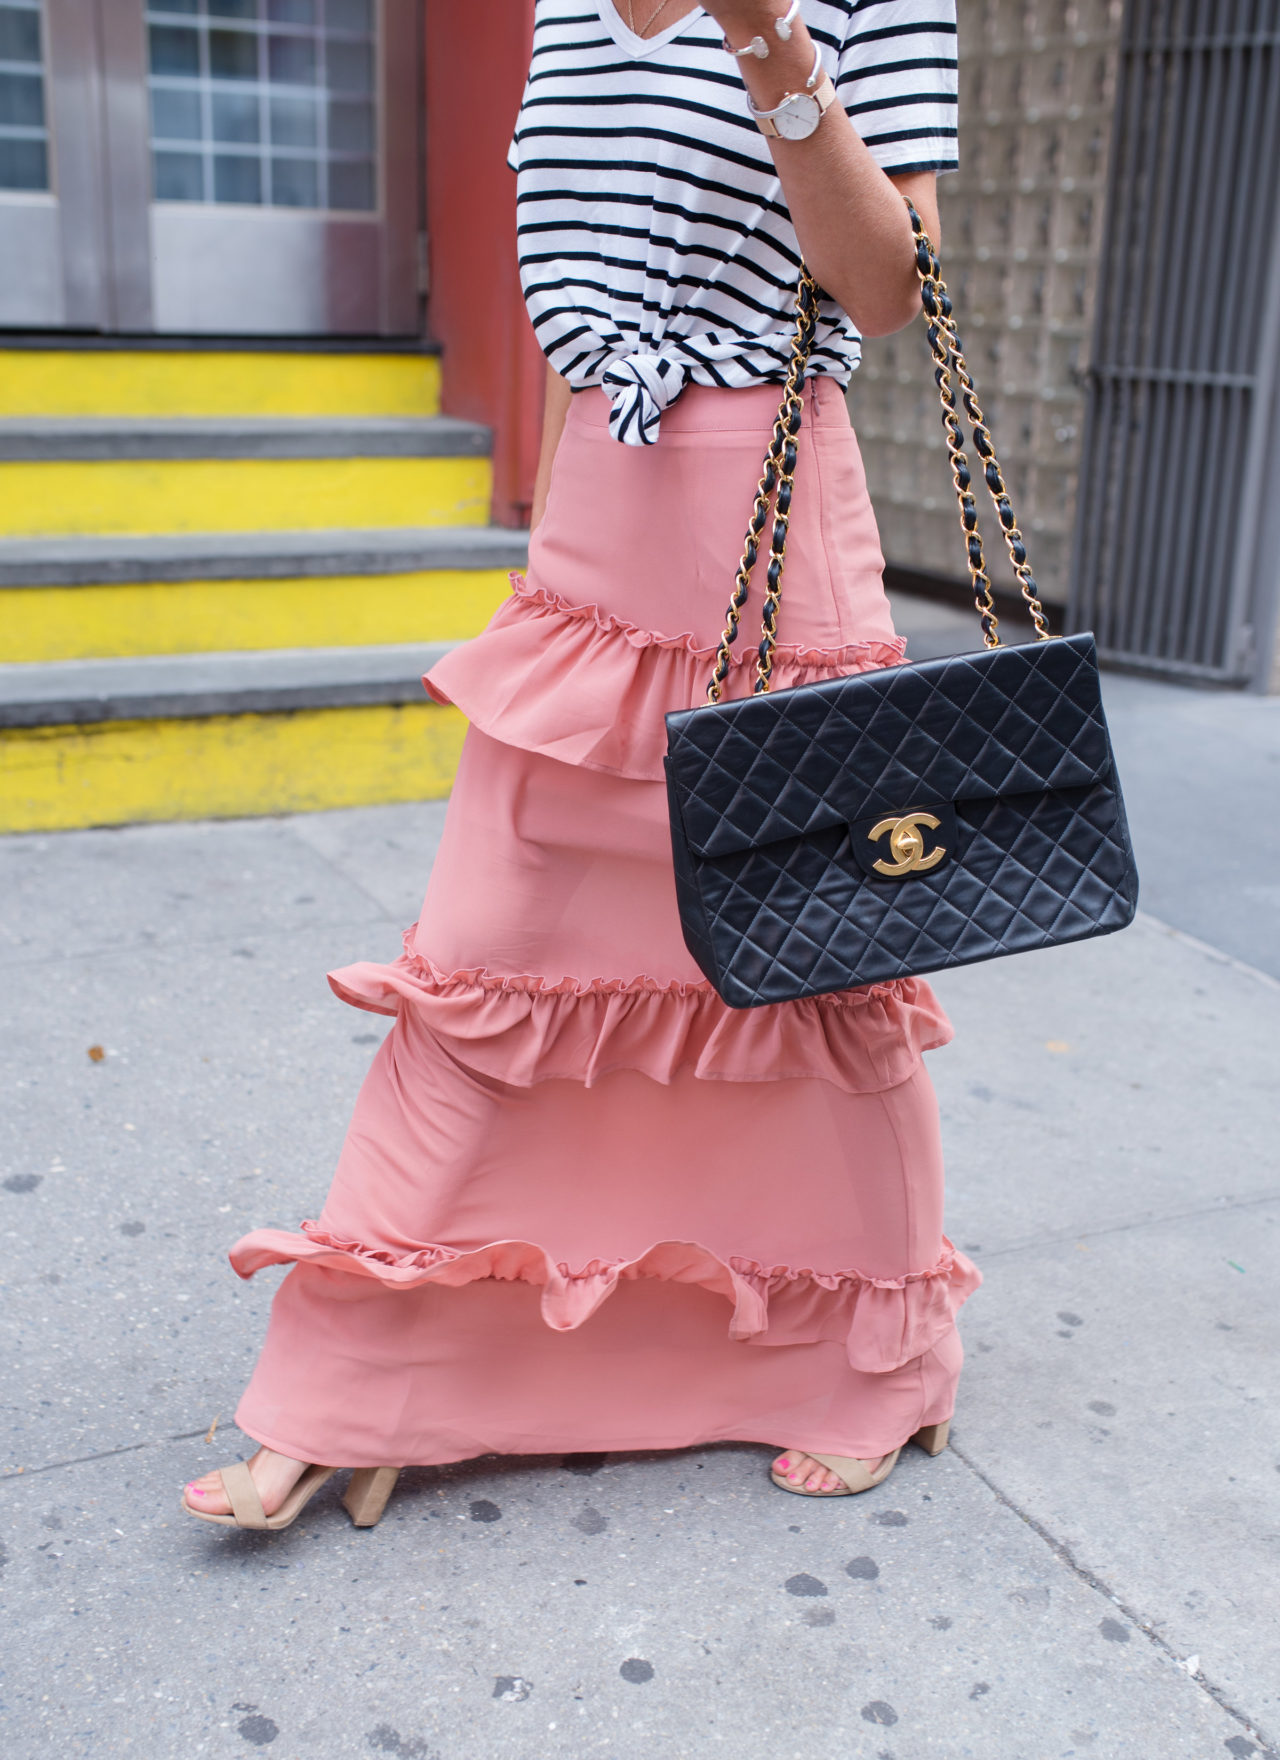 NYFW – Ruffle Skirt + Striped Tee